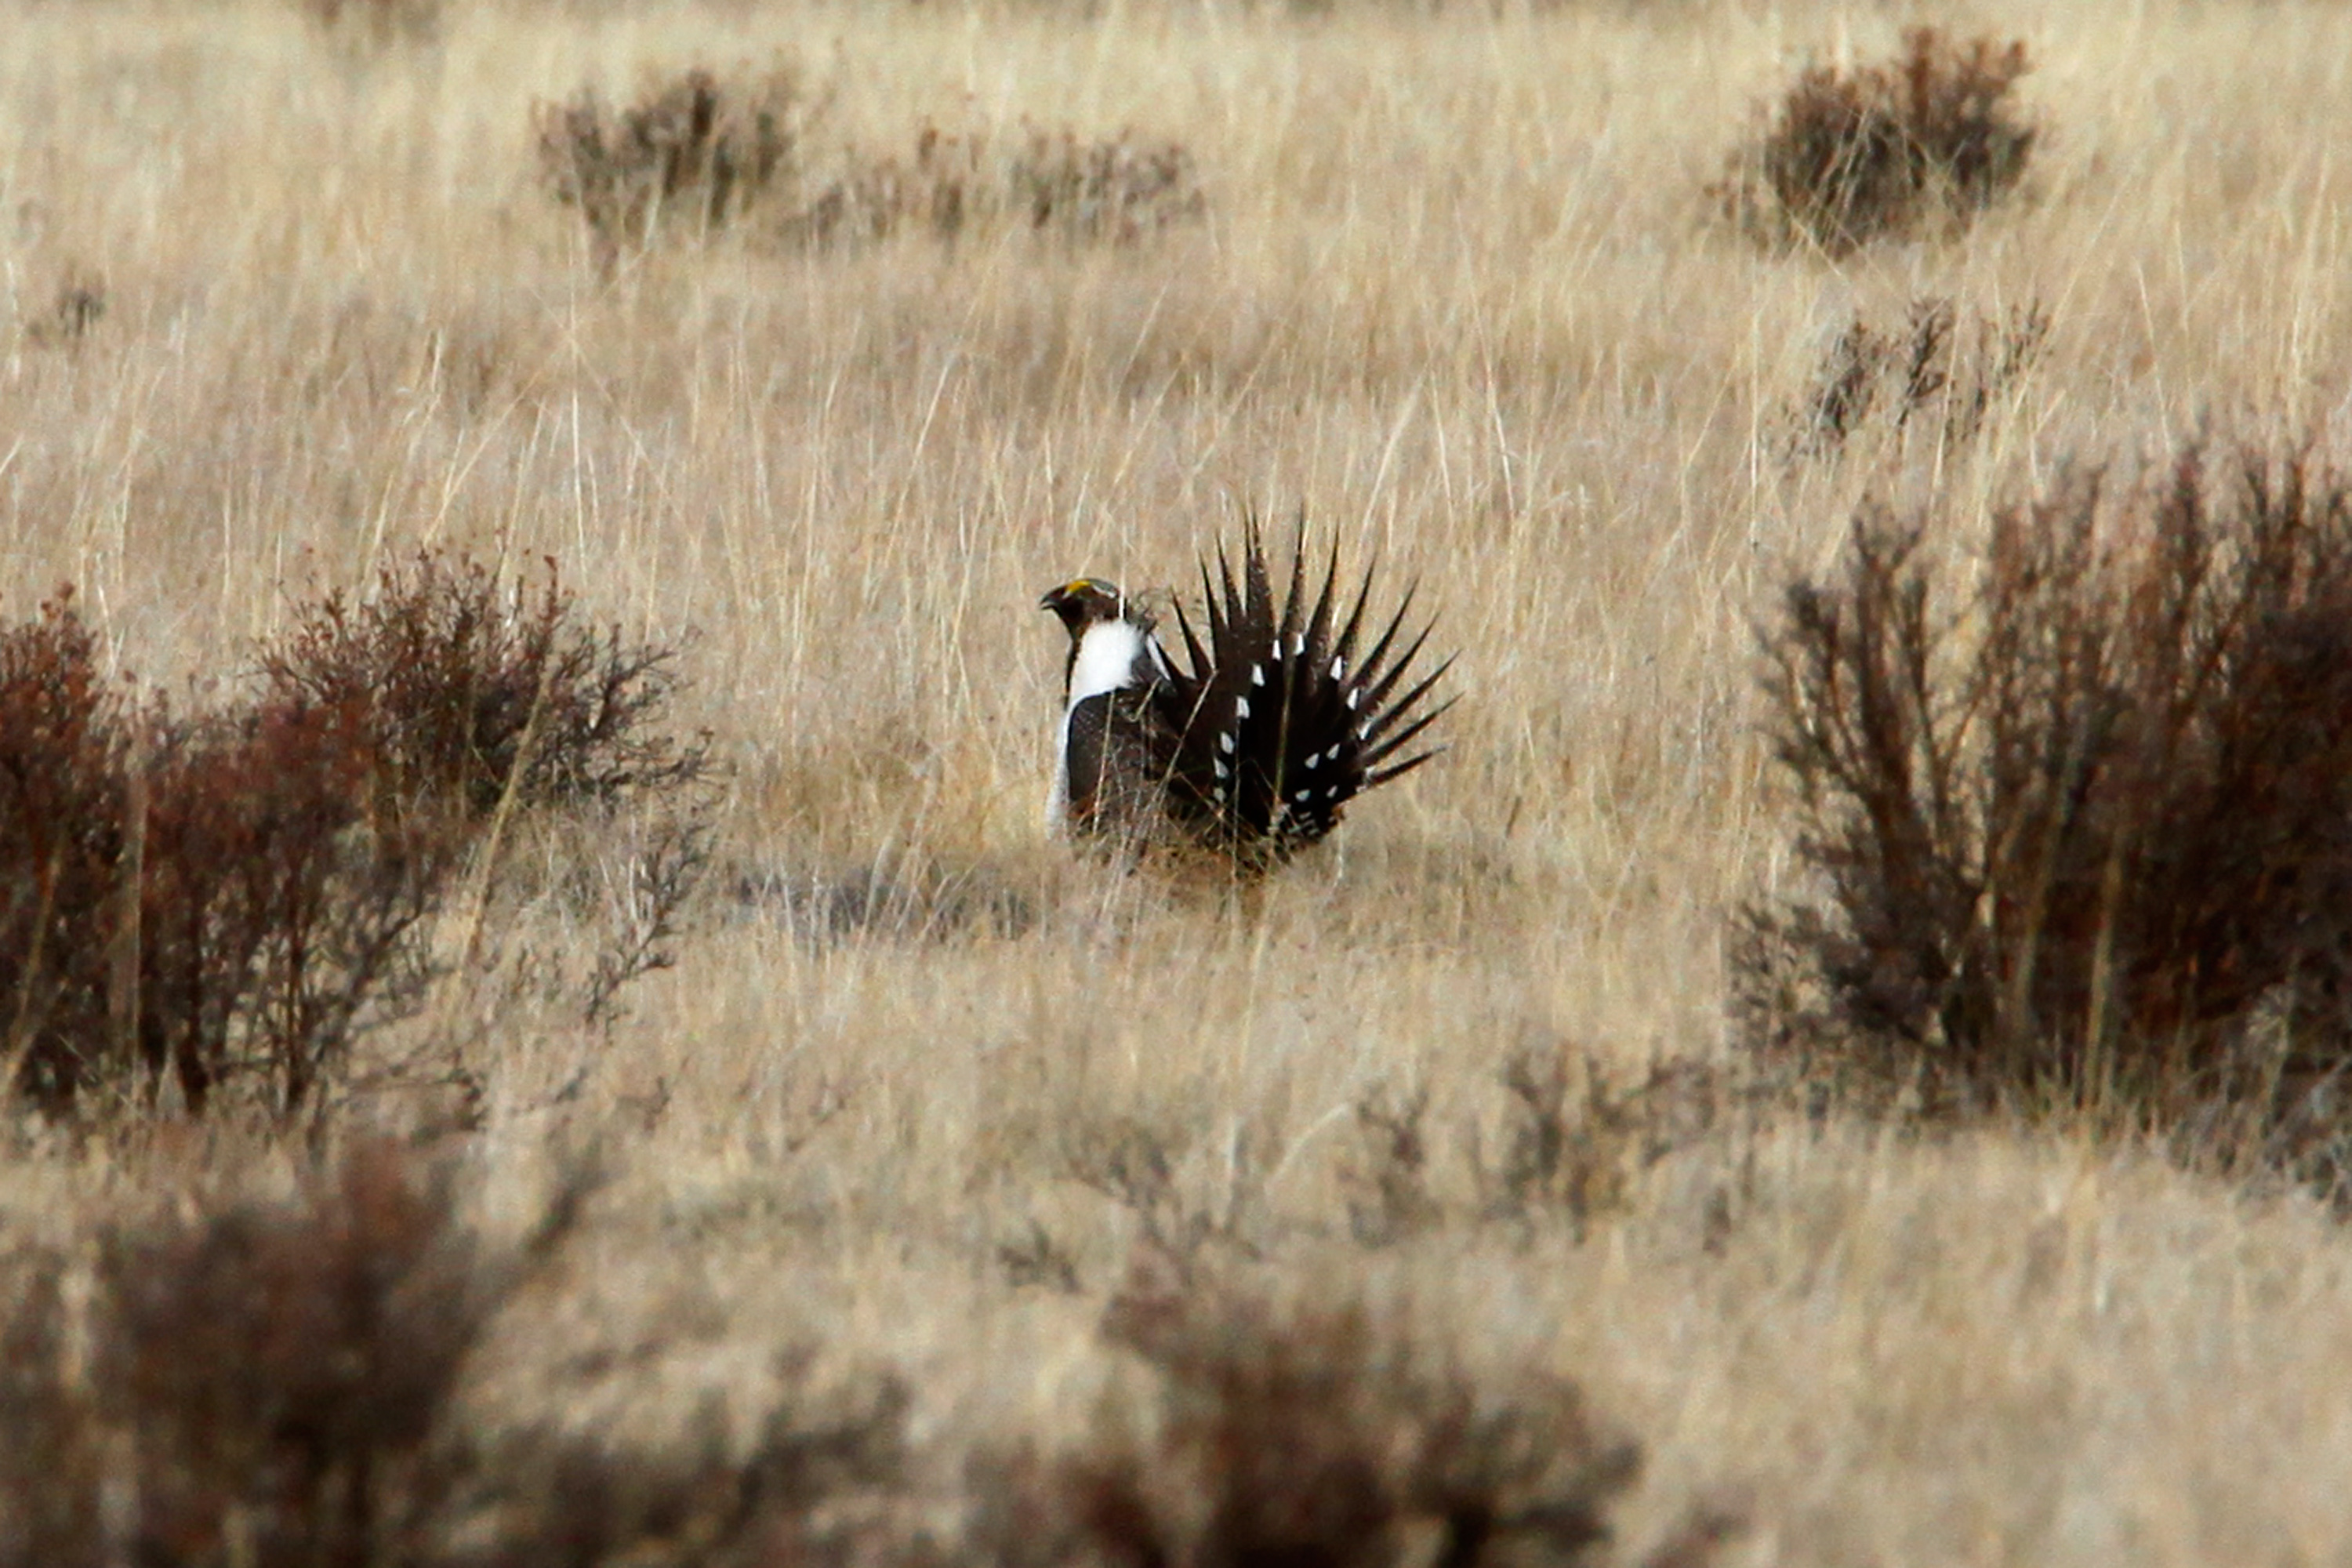 A male sage grouse displays his tail feathers in an effort to attract females.